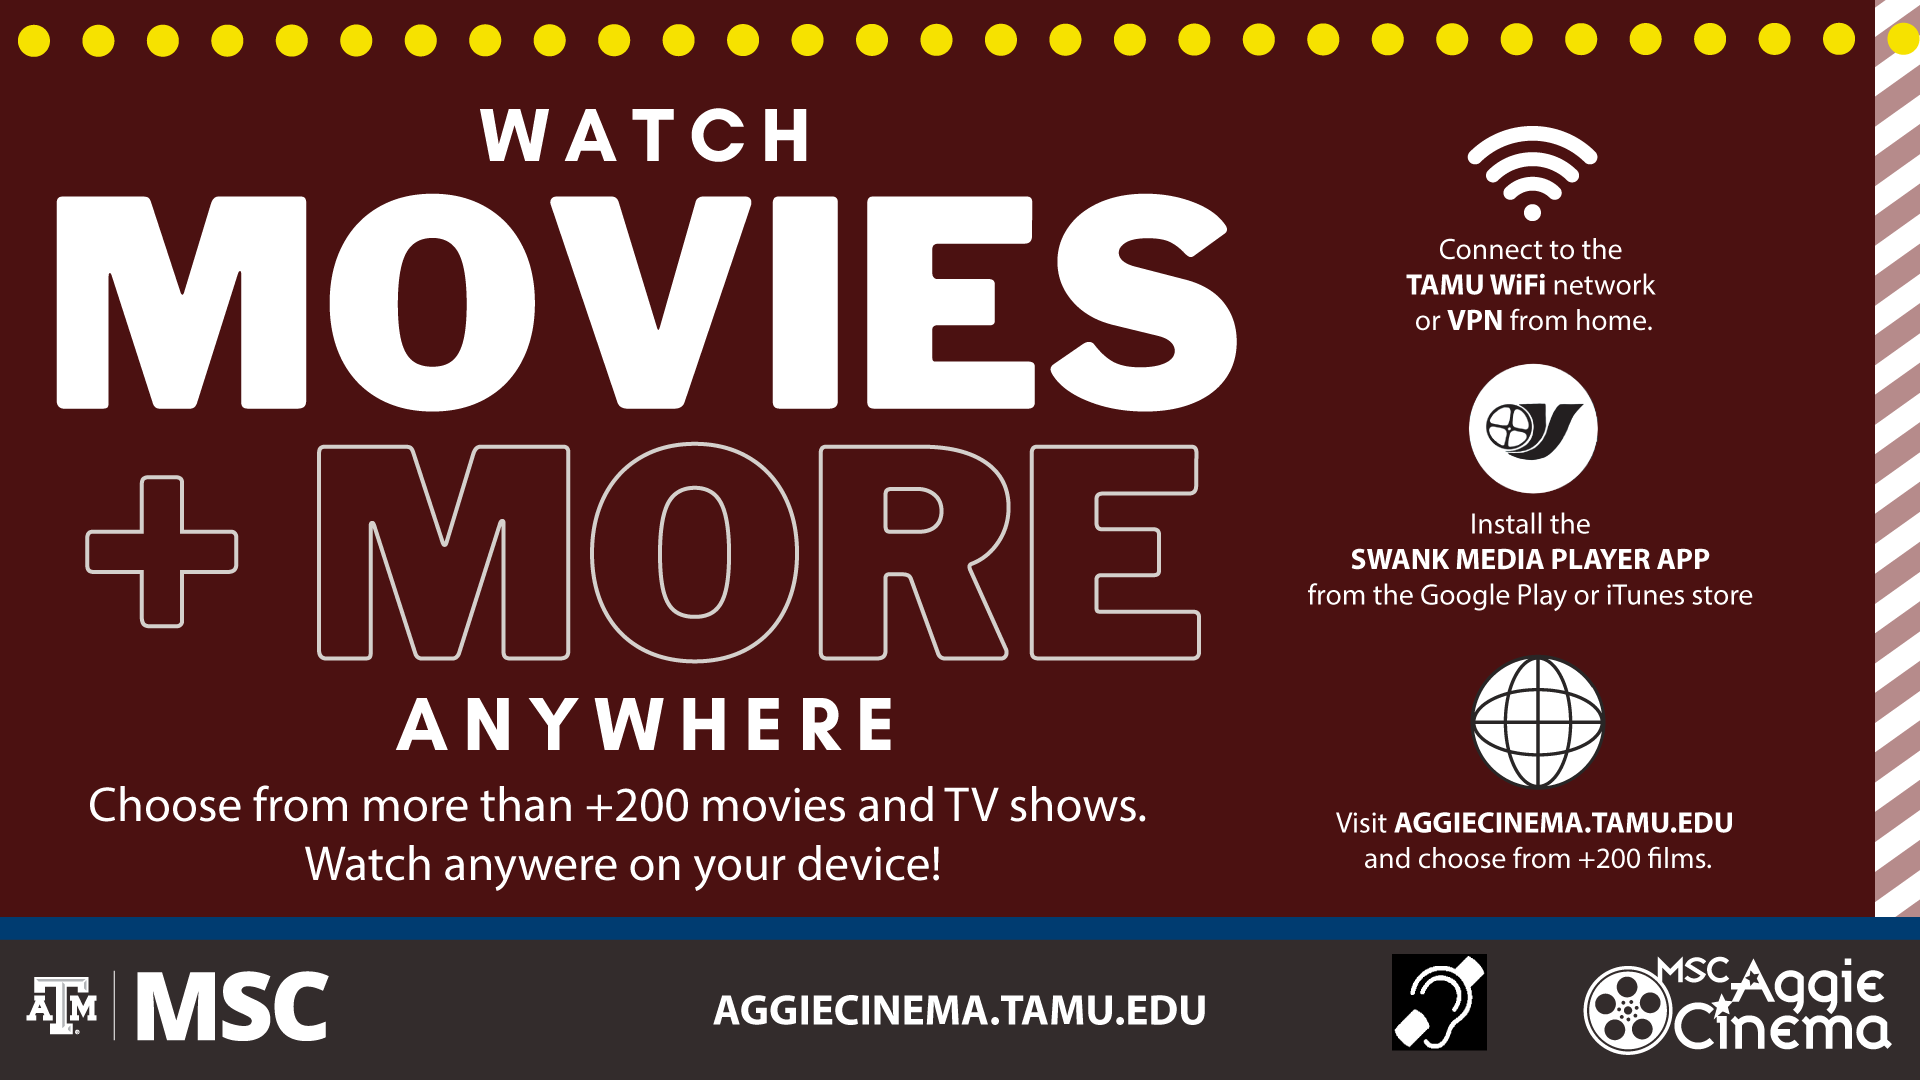 MSC Aggie Cinema presents: Watch Movies and More Anywhere Choose from more than +200 movies and TV shows. Watch anywhere on your device! Connect to the TAMU Wifi network or VPN from home. Install the Swank Media Player App from the Google Play or iTunes Store. Visit aggiecinema.tamu.edu